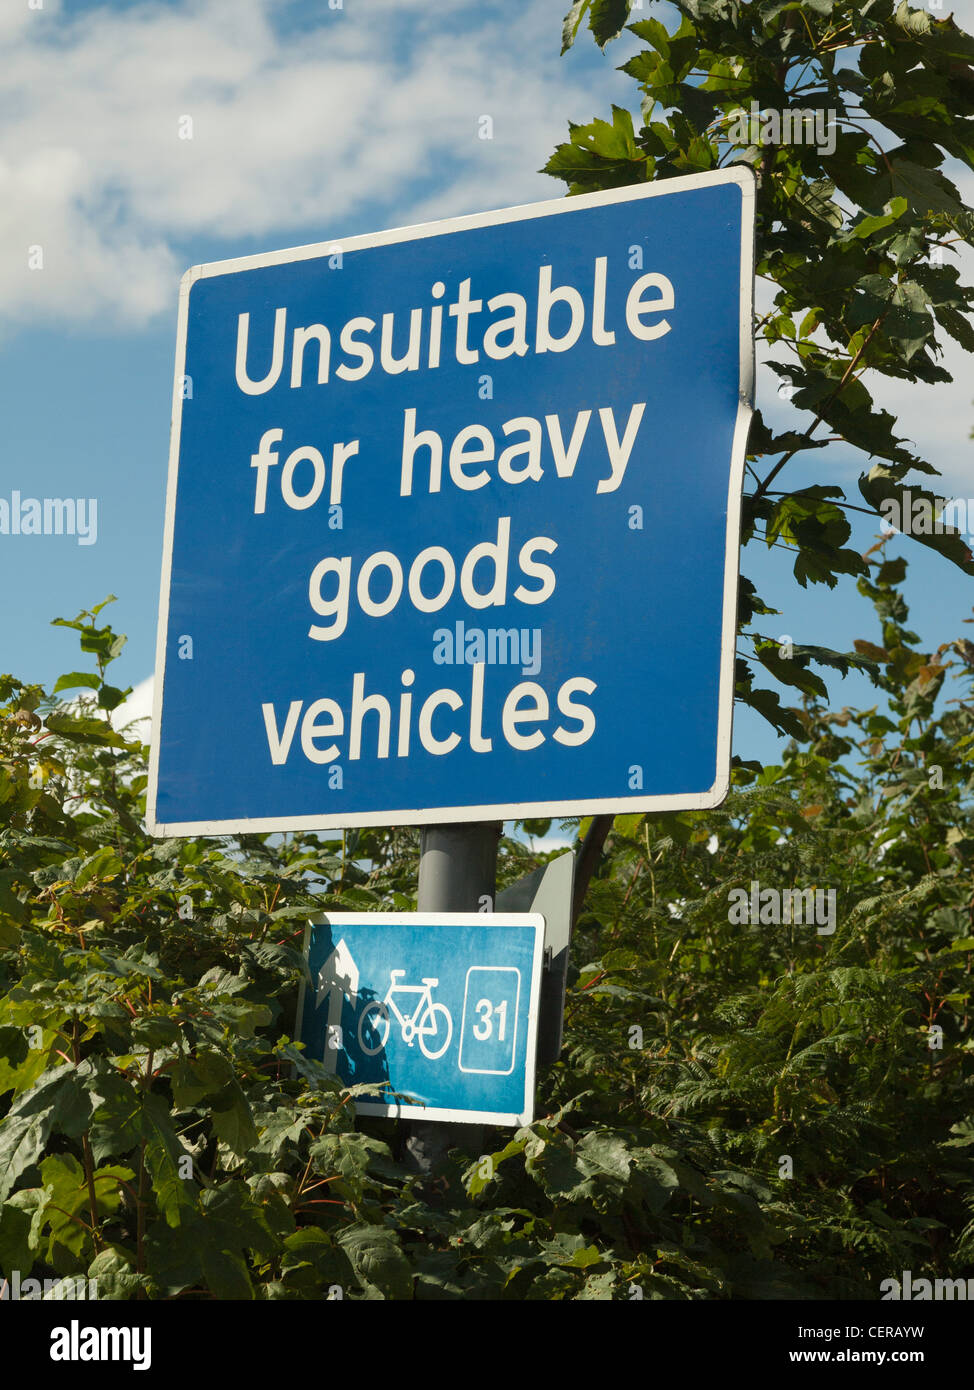 WARNING ROAD SIGN ON COUNTRY ROAD UNSUITABLE FOR TRUCKS WITH BICYCLE ROUTE MARKER IN HEDGE - Stock Image